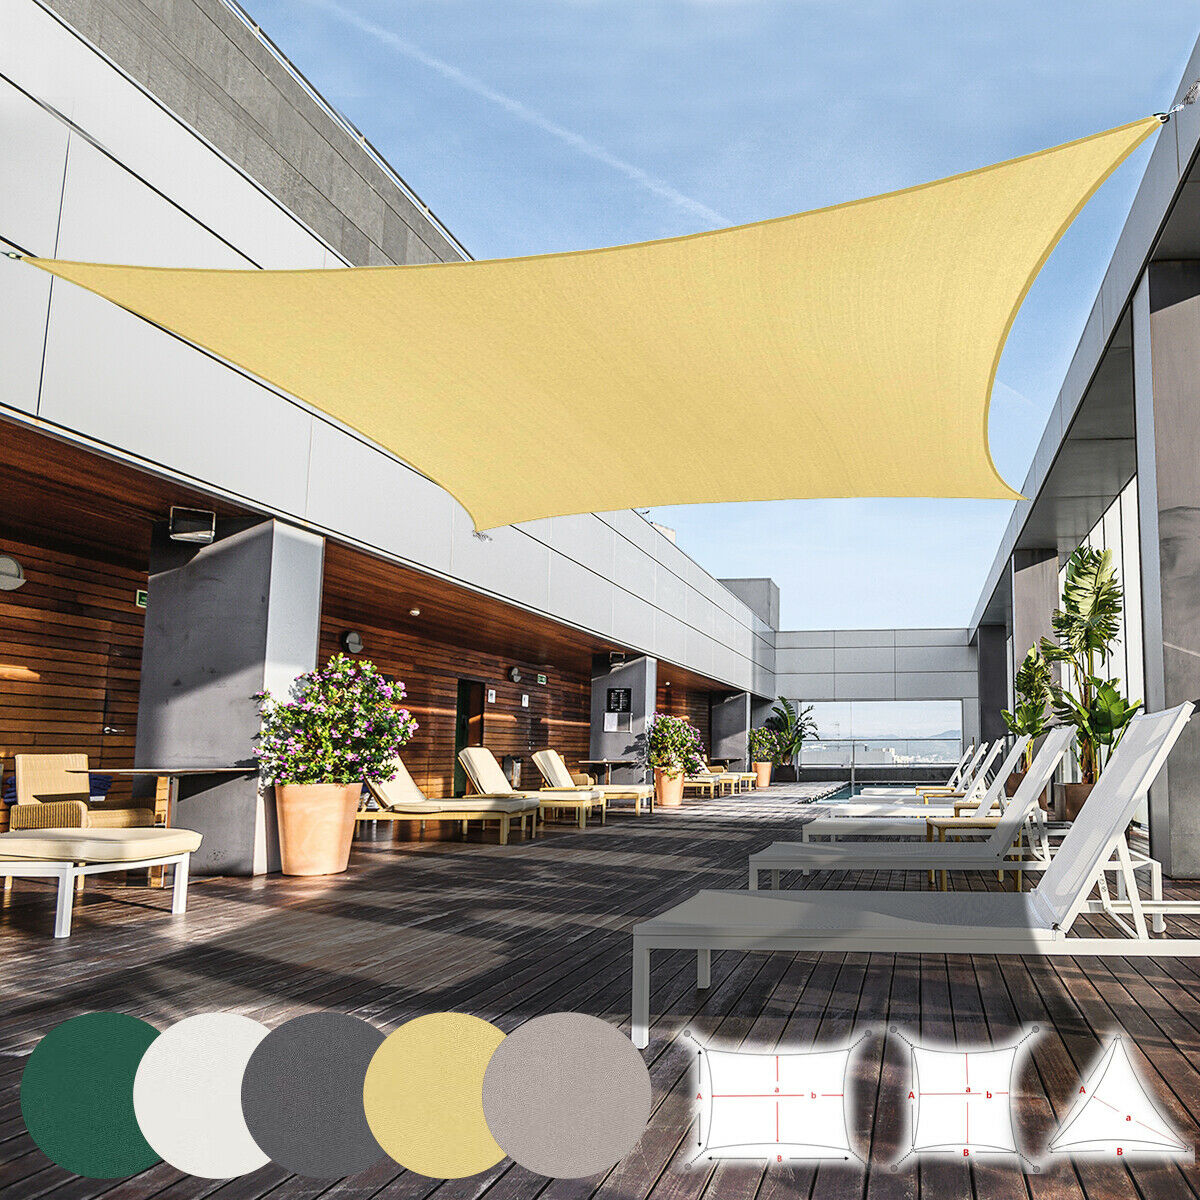 Coscool Sun Shade Sail Rectangle Fabric Patio Shade Sails Canopy 200gsm Hdpe Uv For Sale Online Ebay